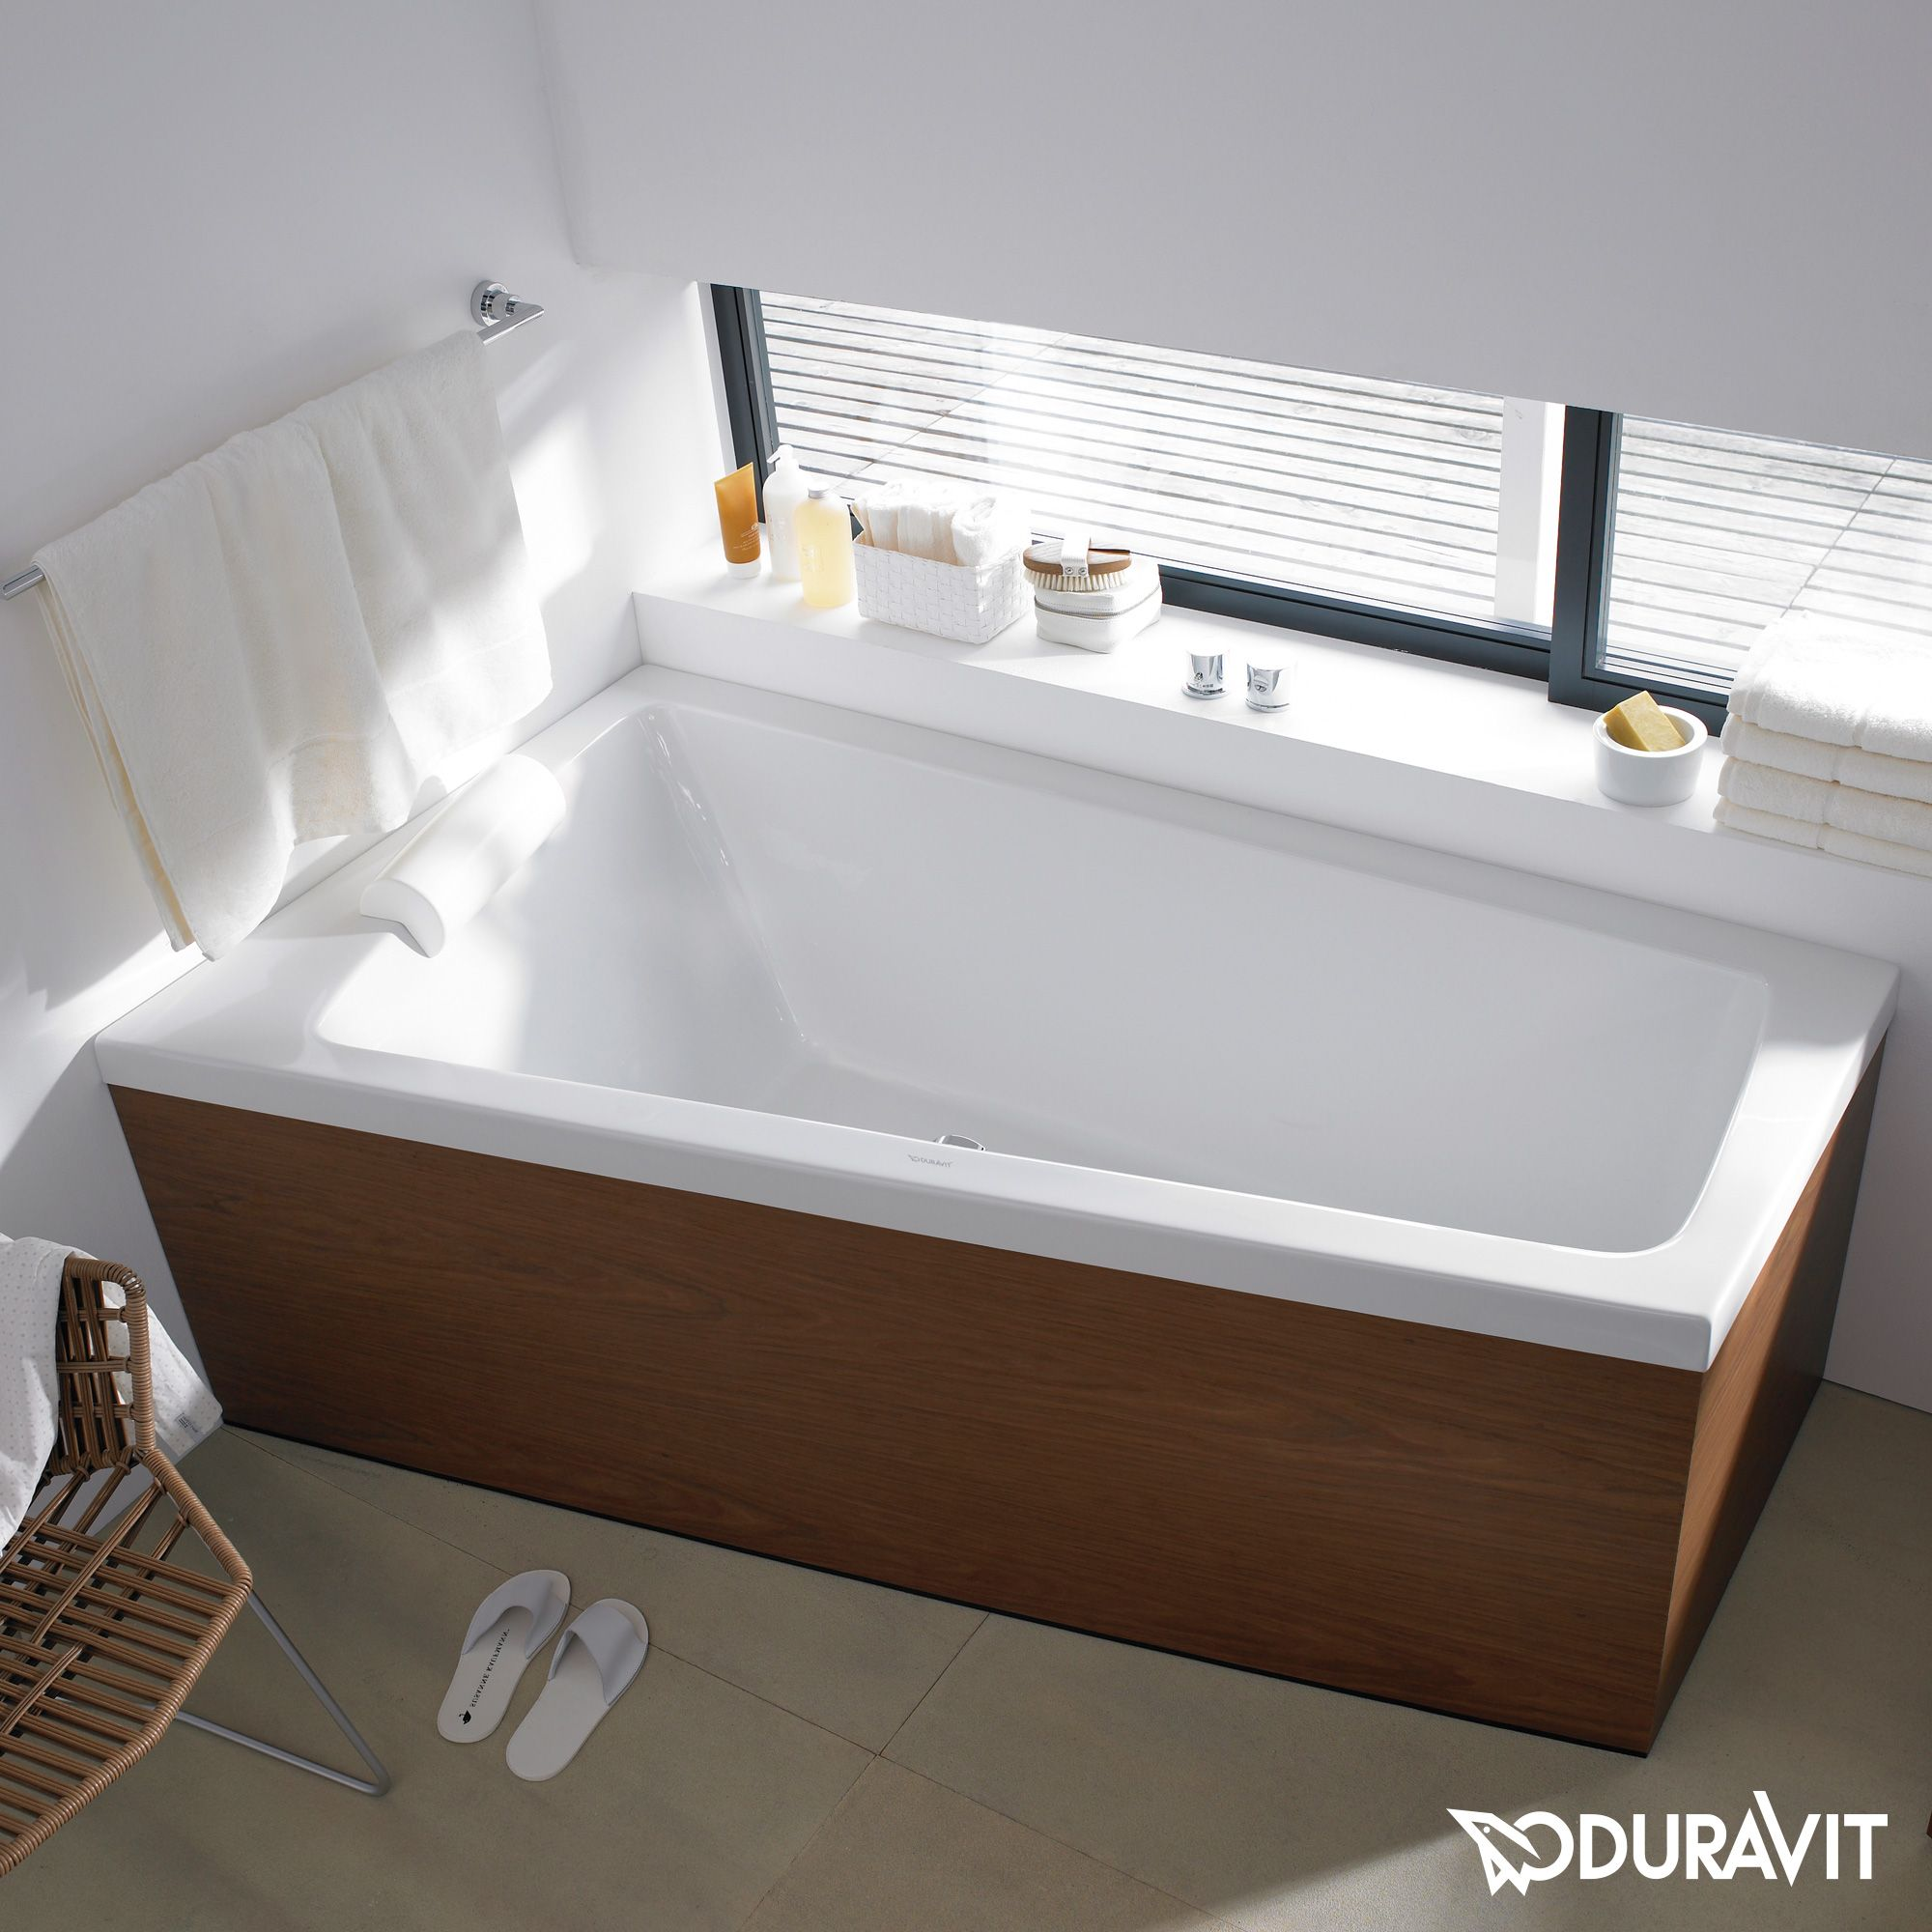 duravit paiova badewanne ecke links einbauversion haus pinterest duravit and link